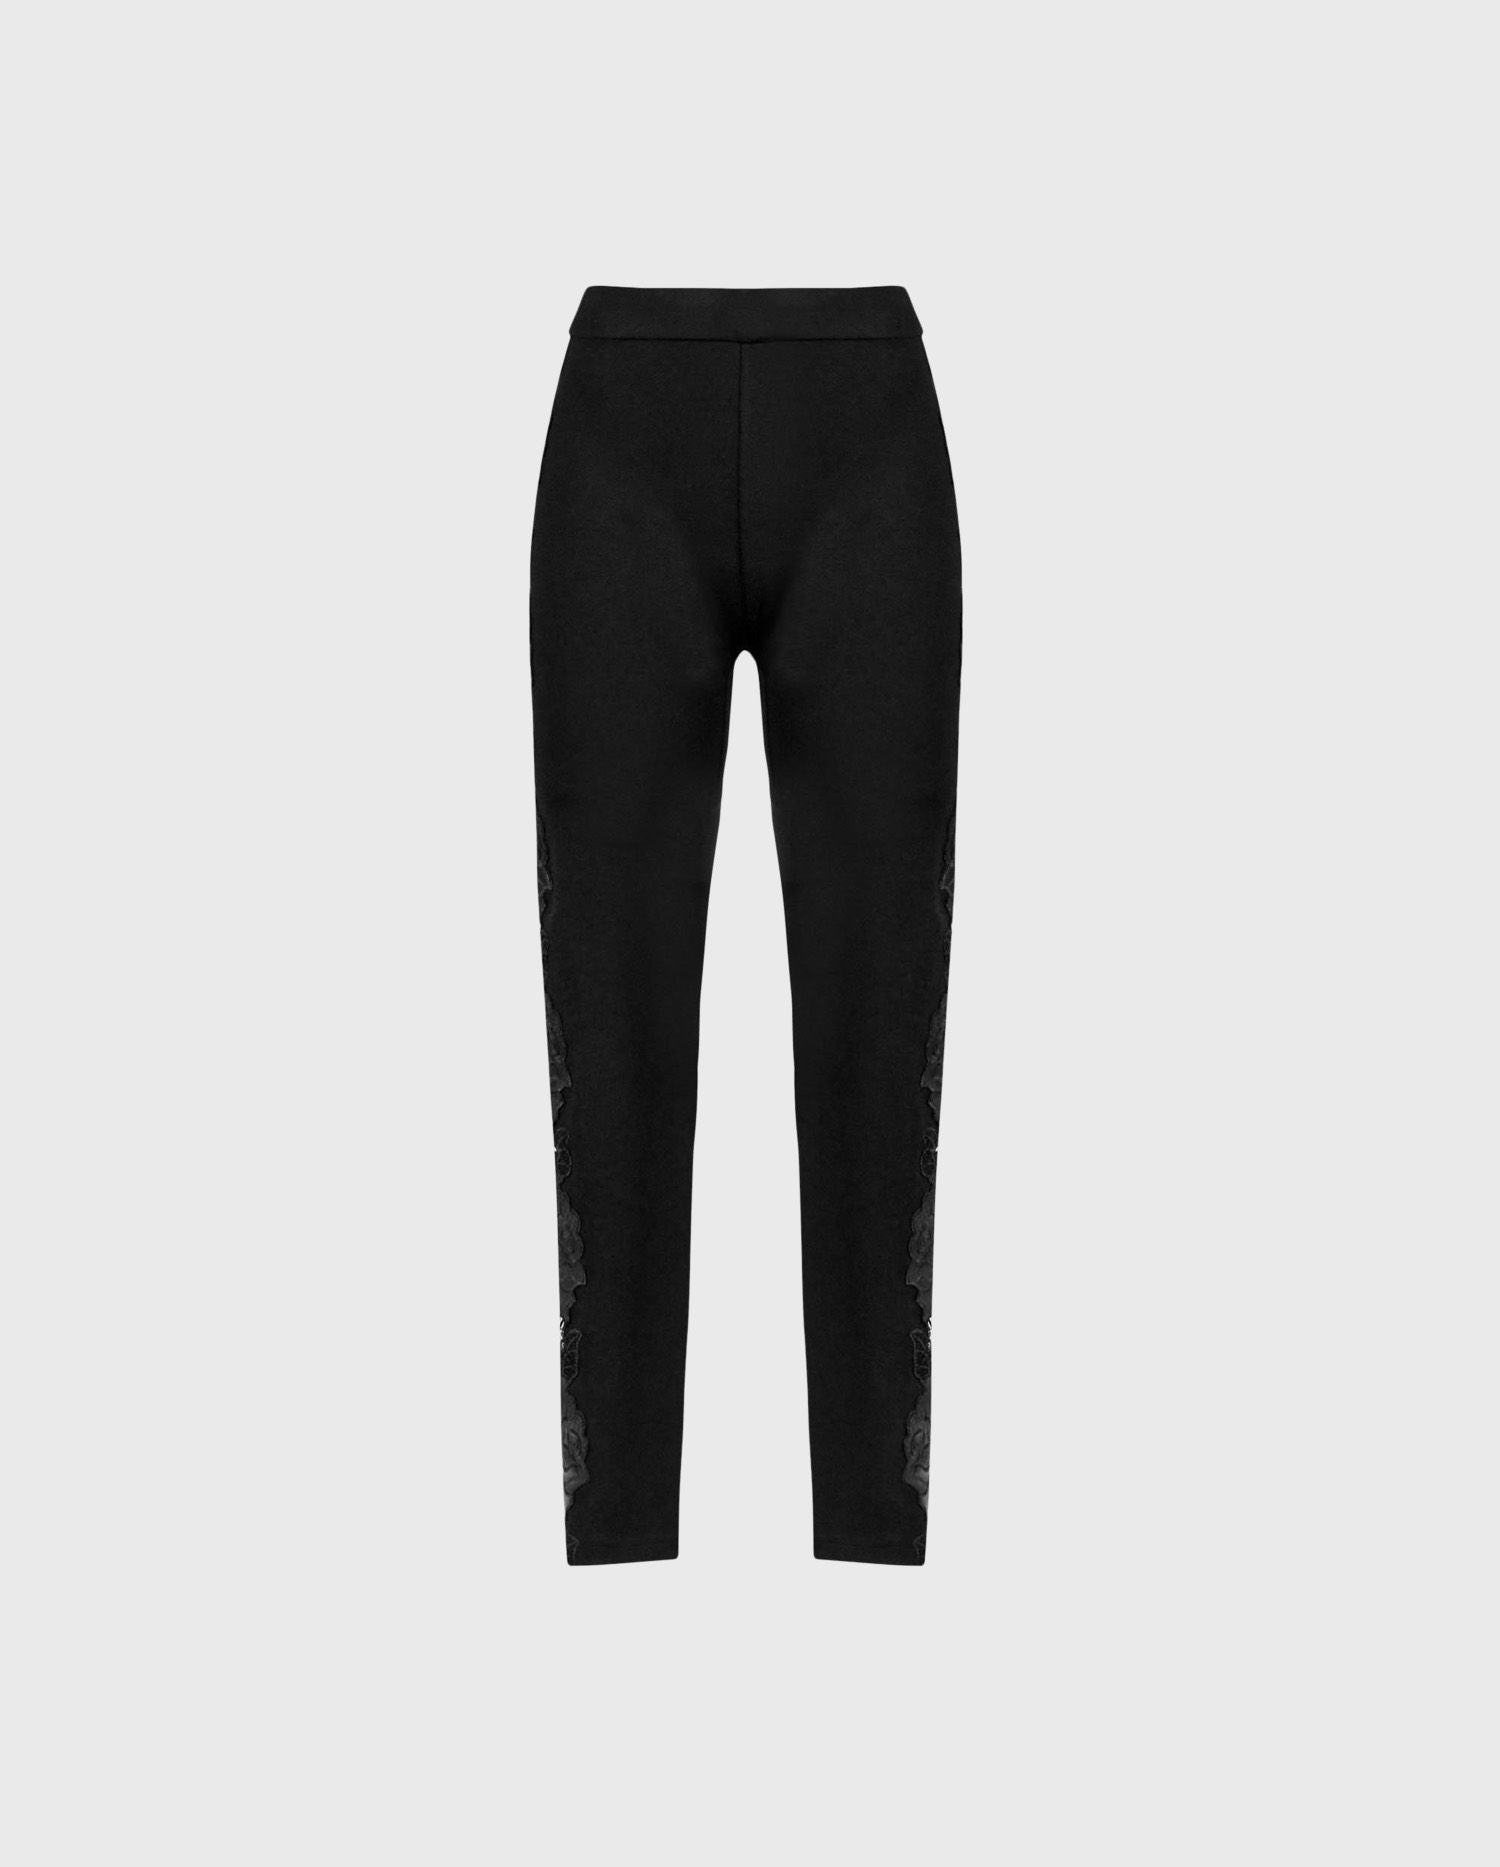 Anne Fontaine: Vonya: Full-length leggings with vertical rose appliques